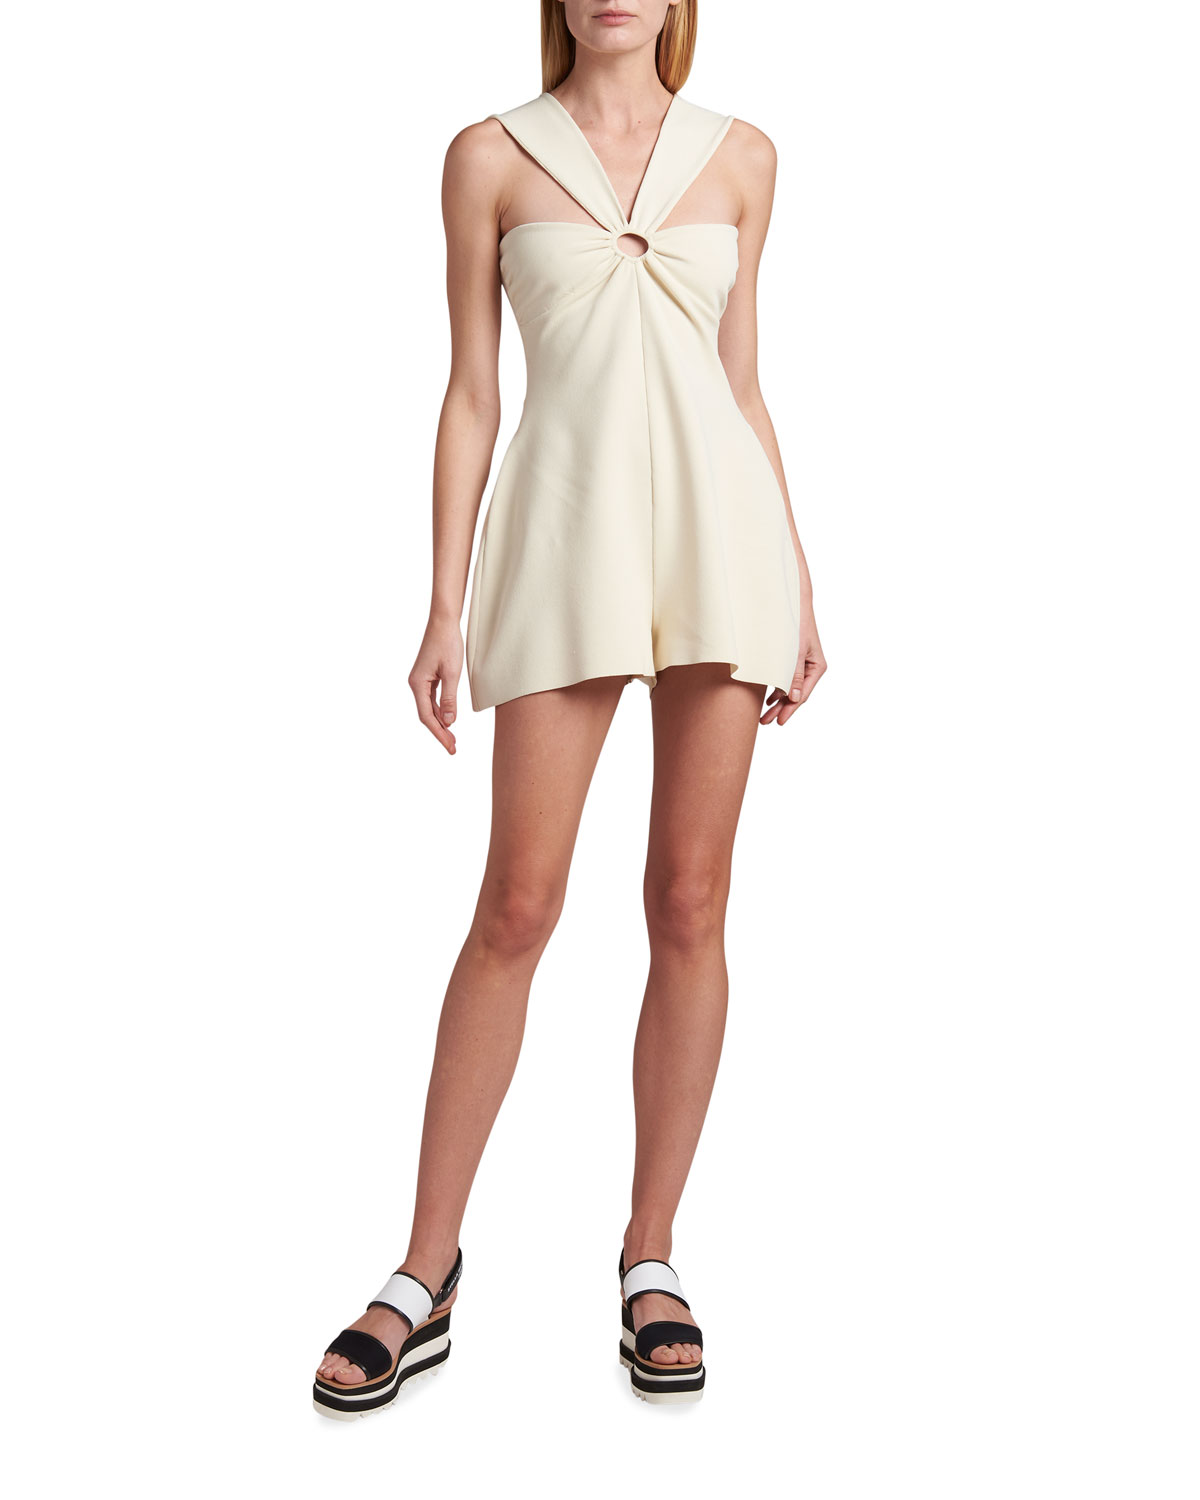 Stella Mccartney Playsuits COMPACT KNIT O-RING ROMPER